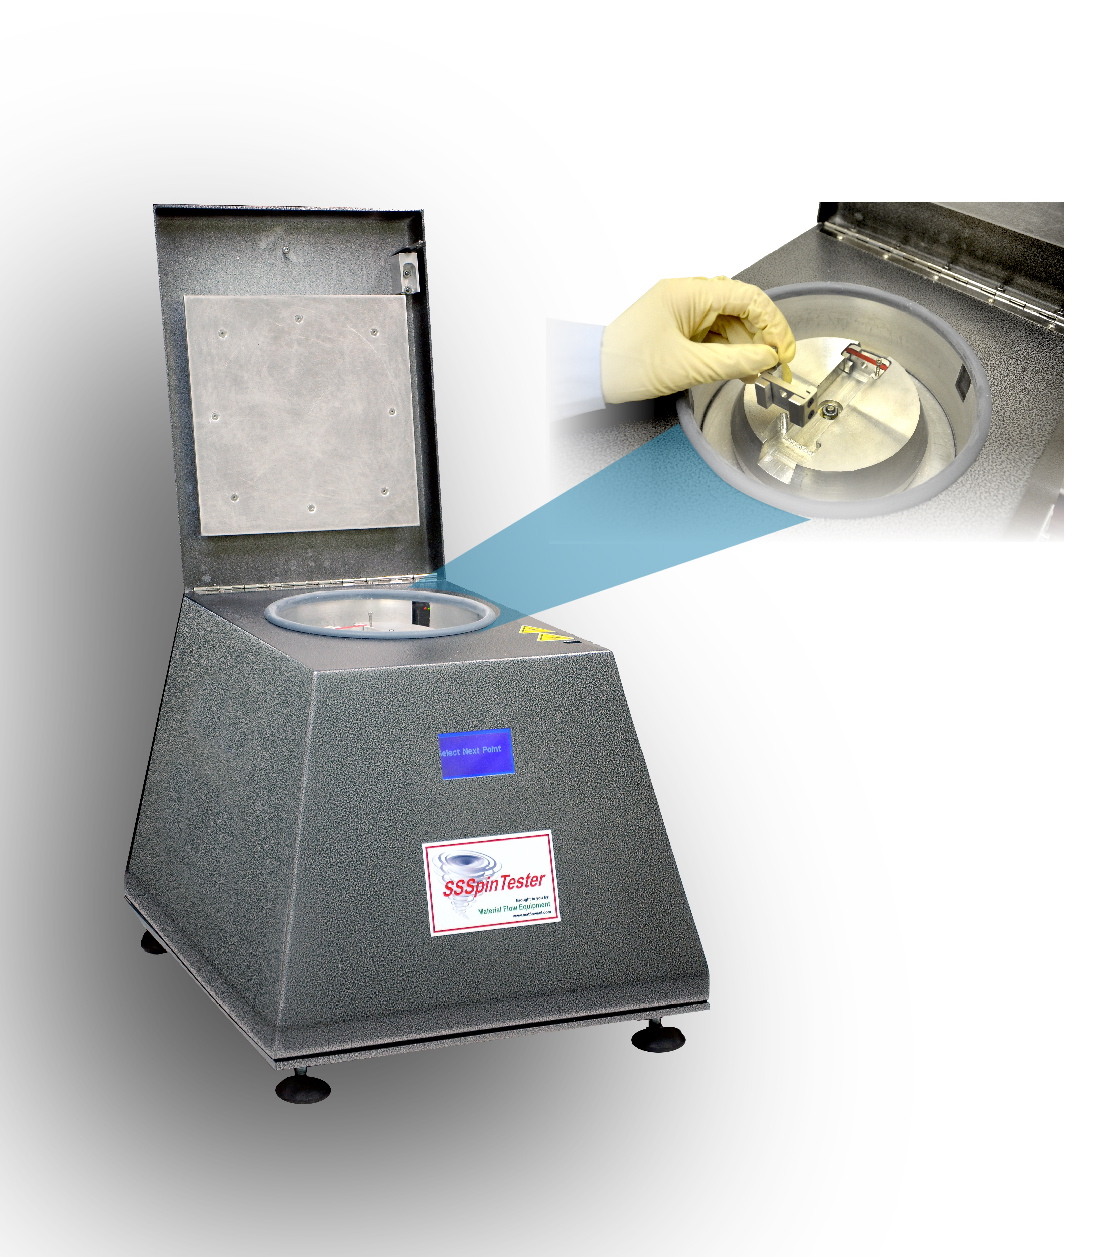 Particulate Systems' SSSpinTester – An Innovative Low-Volume, Powder Strength Tester